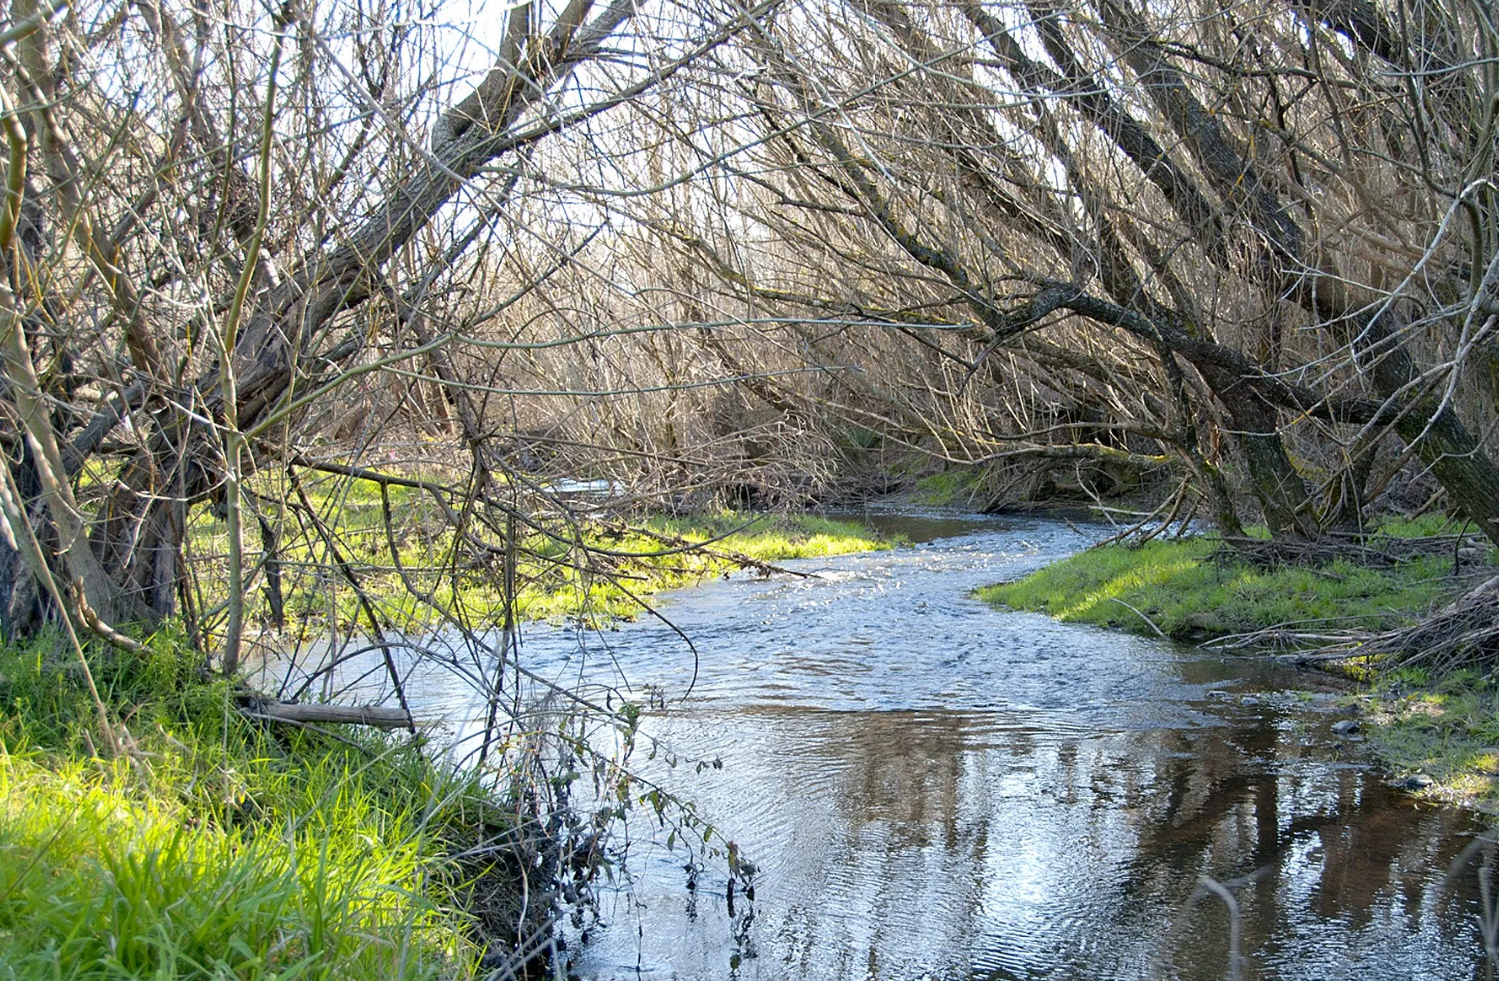 Willows growing by the water in rural Victoria